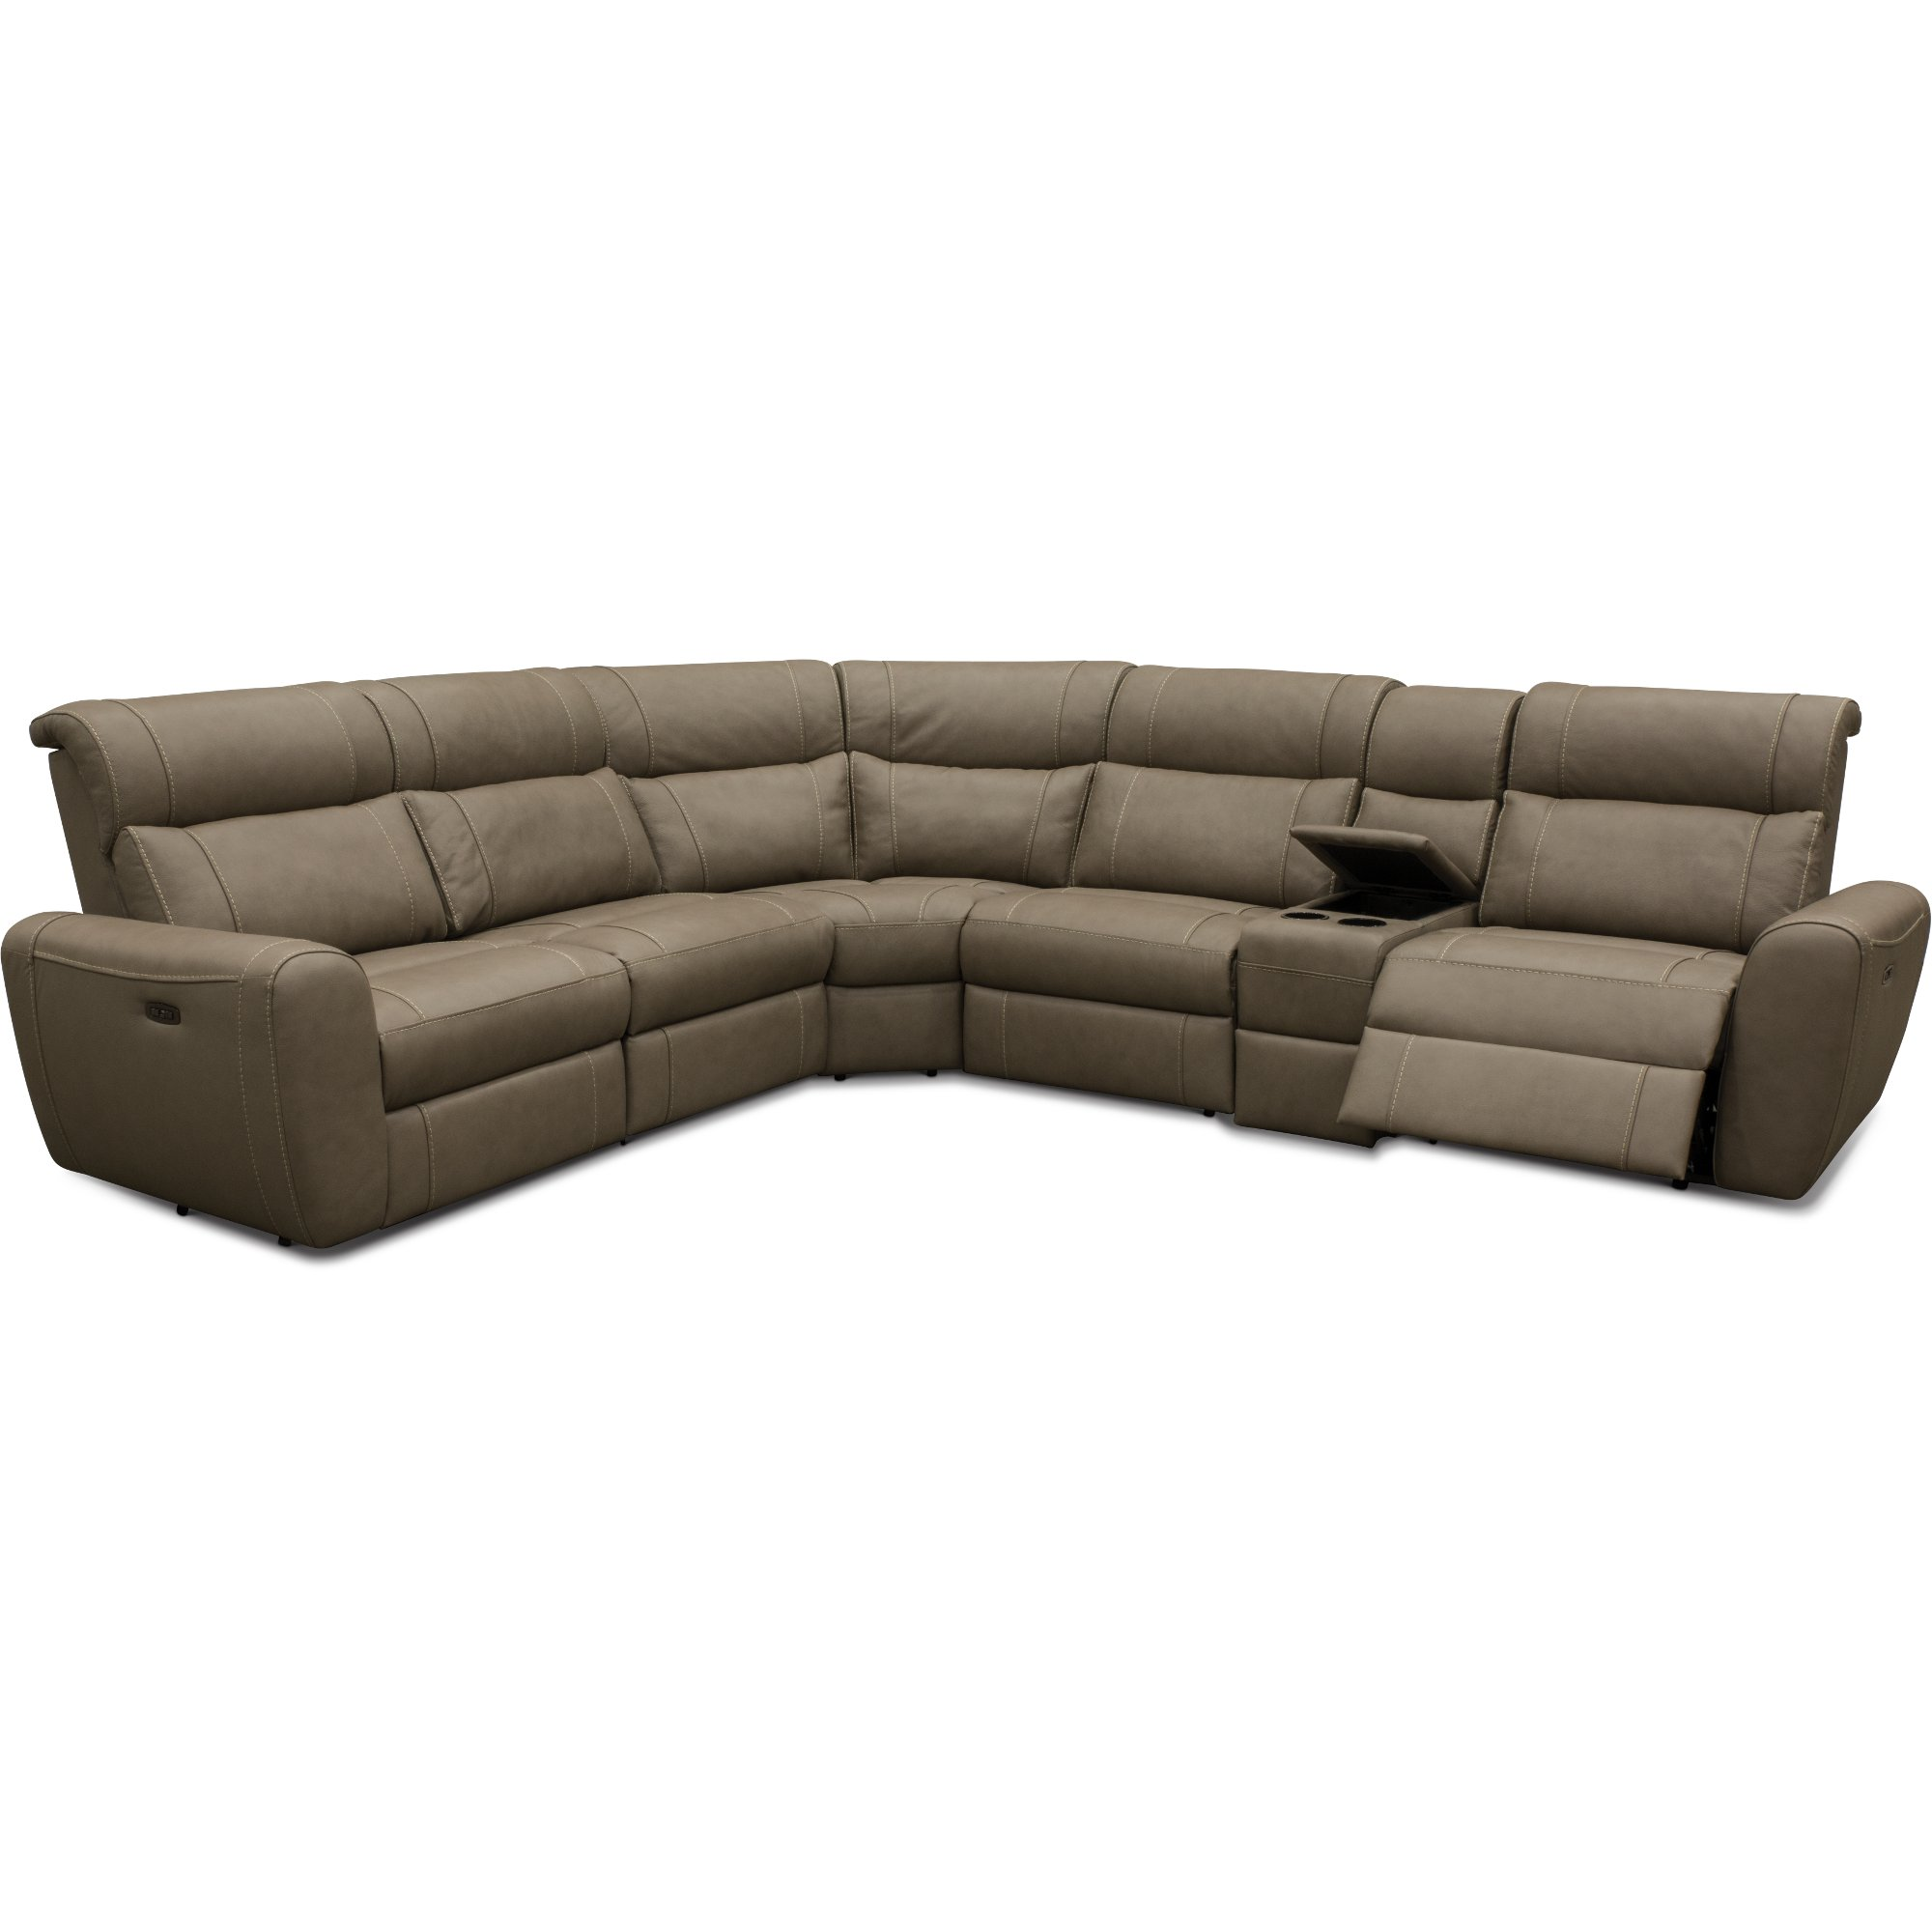 Admirable Taupe Leather Match 6 Piece Power Sectional Sofa Robert Bralicious Painted Fabric Chair Ideas Braliciousco